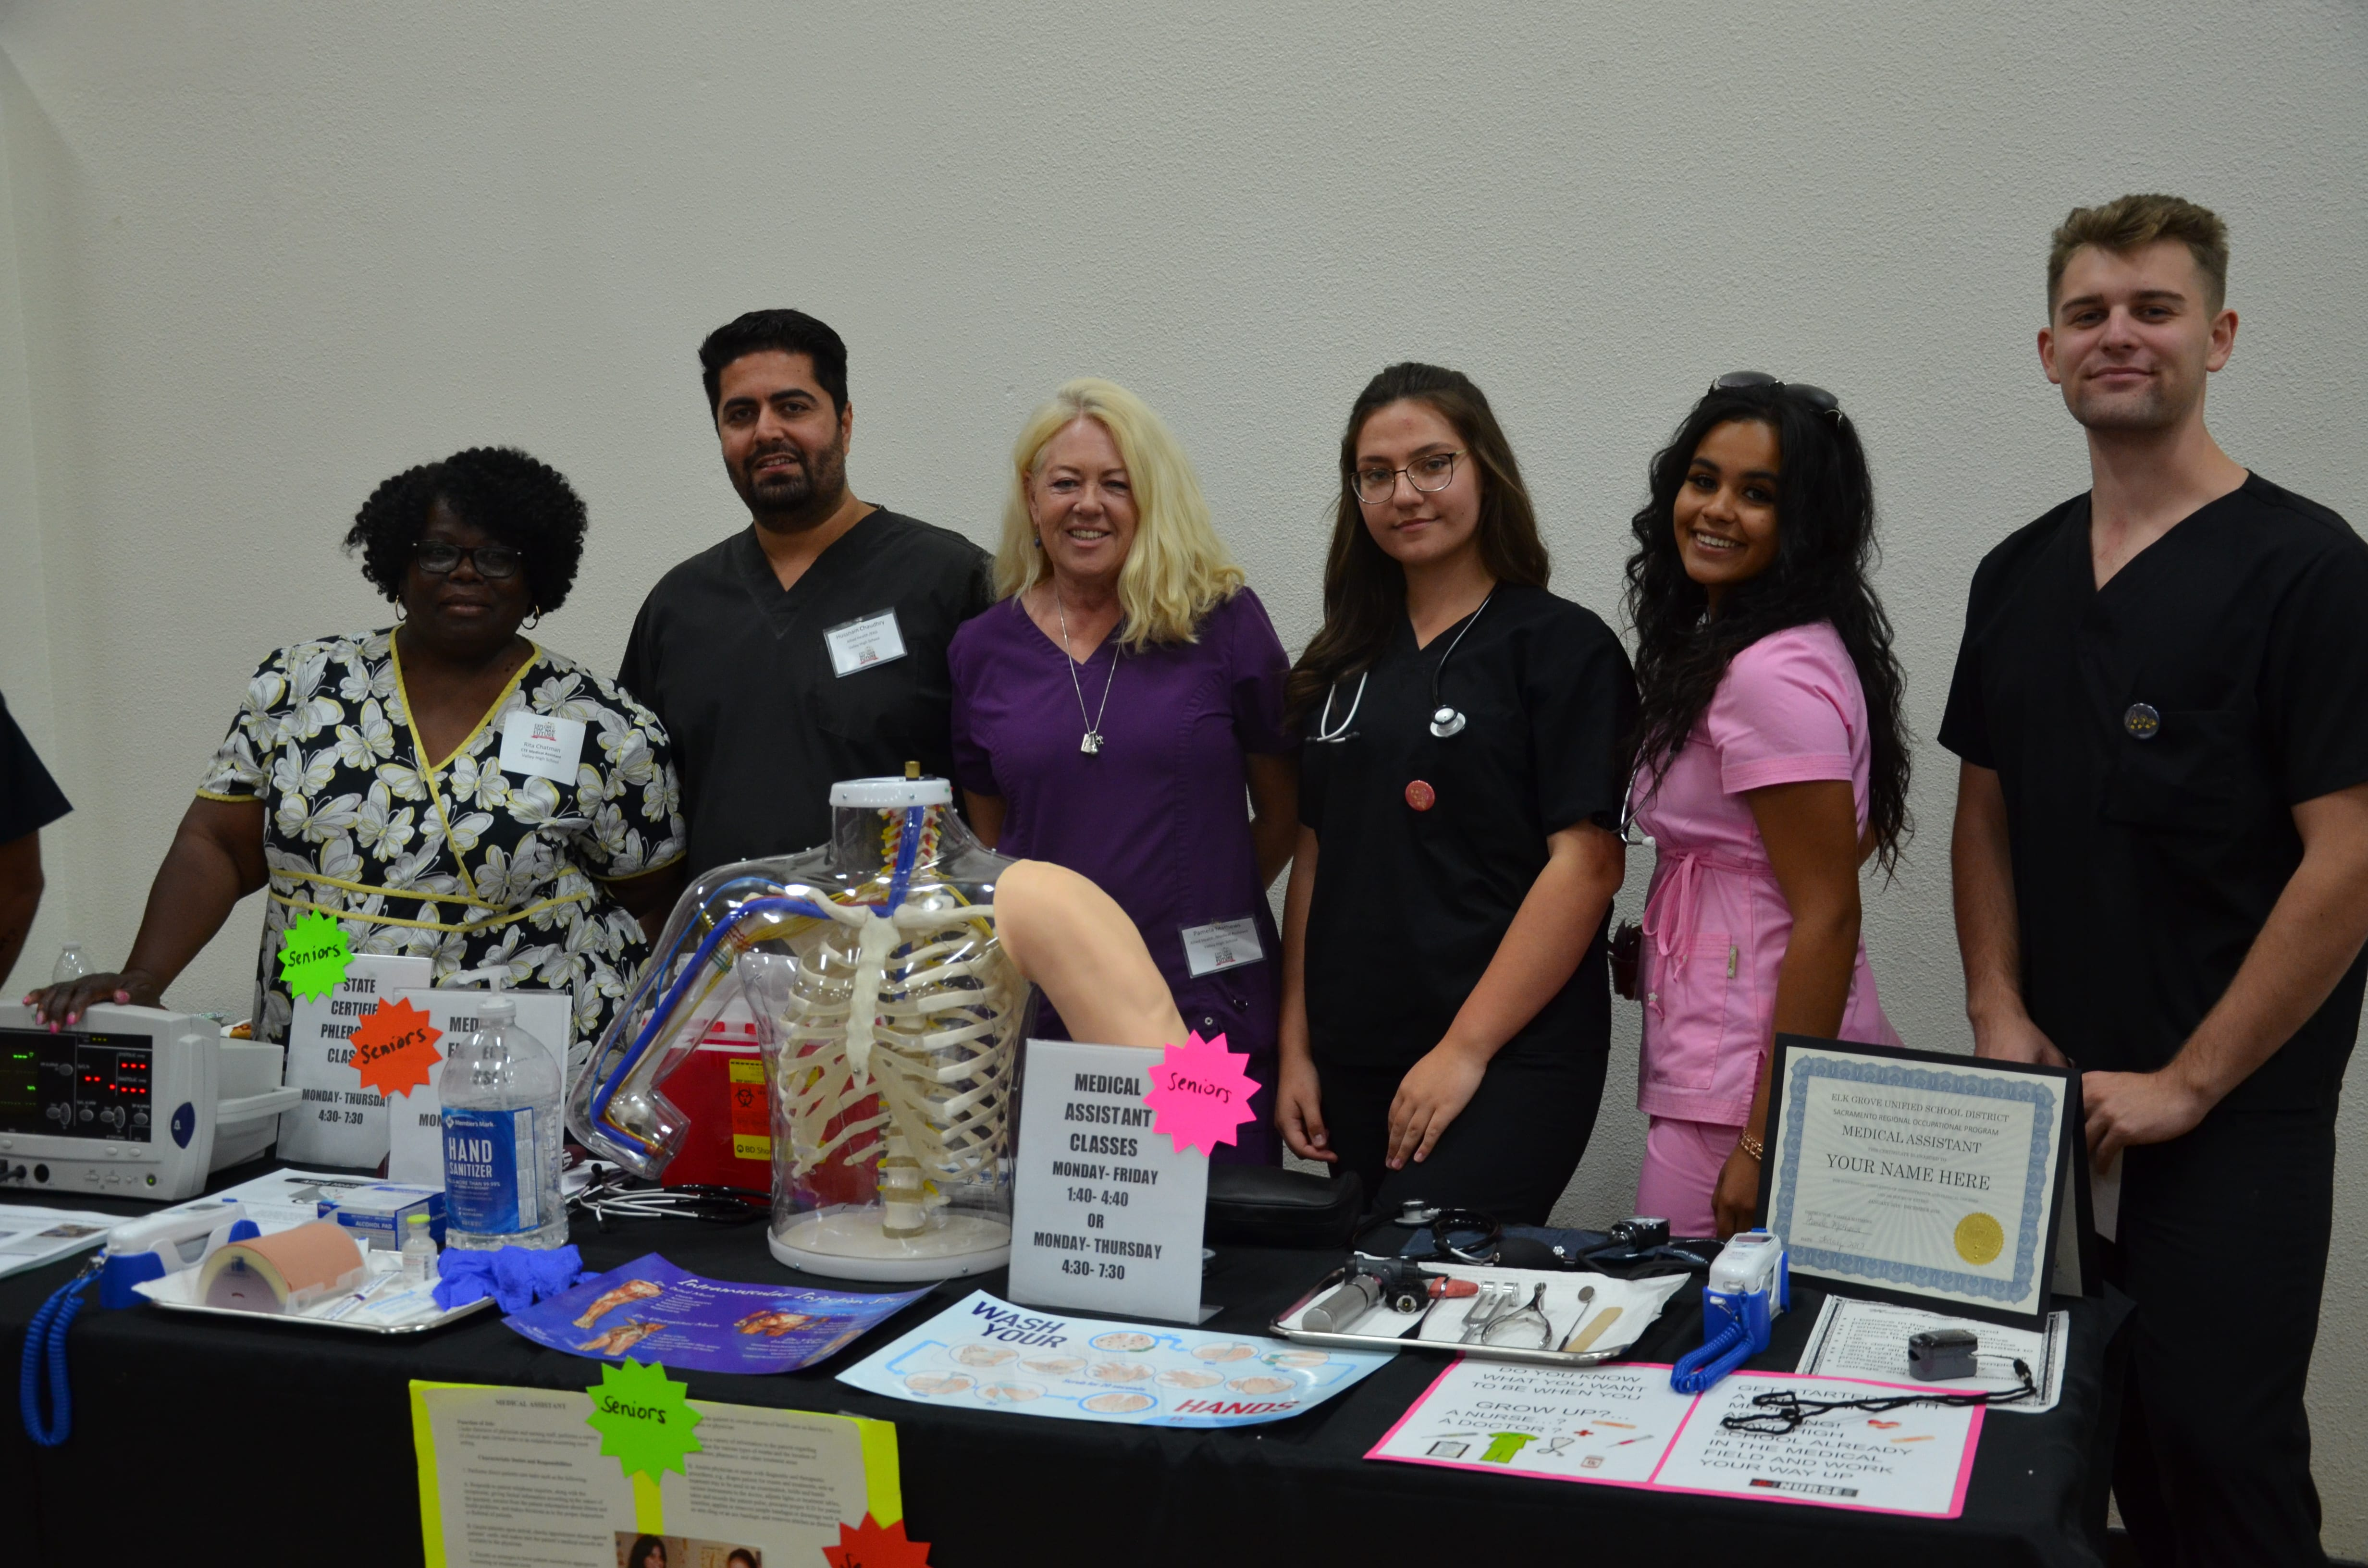 Allied Health and CTE Medical Assistant teachers are excited to showcase their programs at Map Your Future!